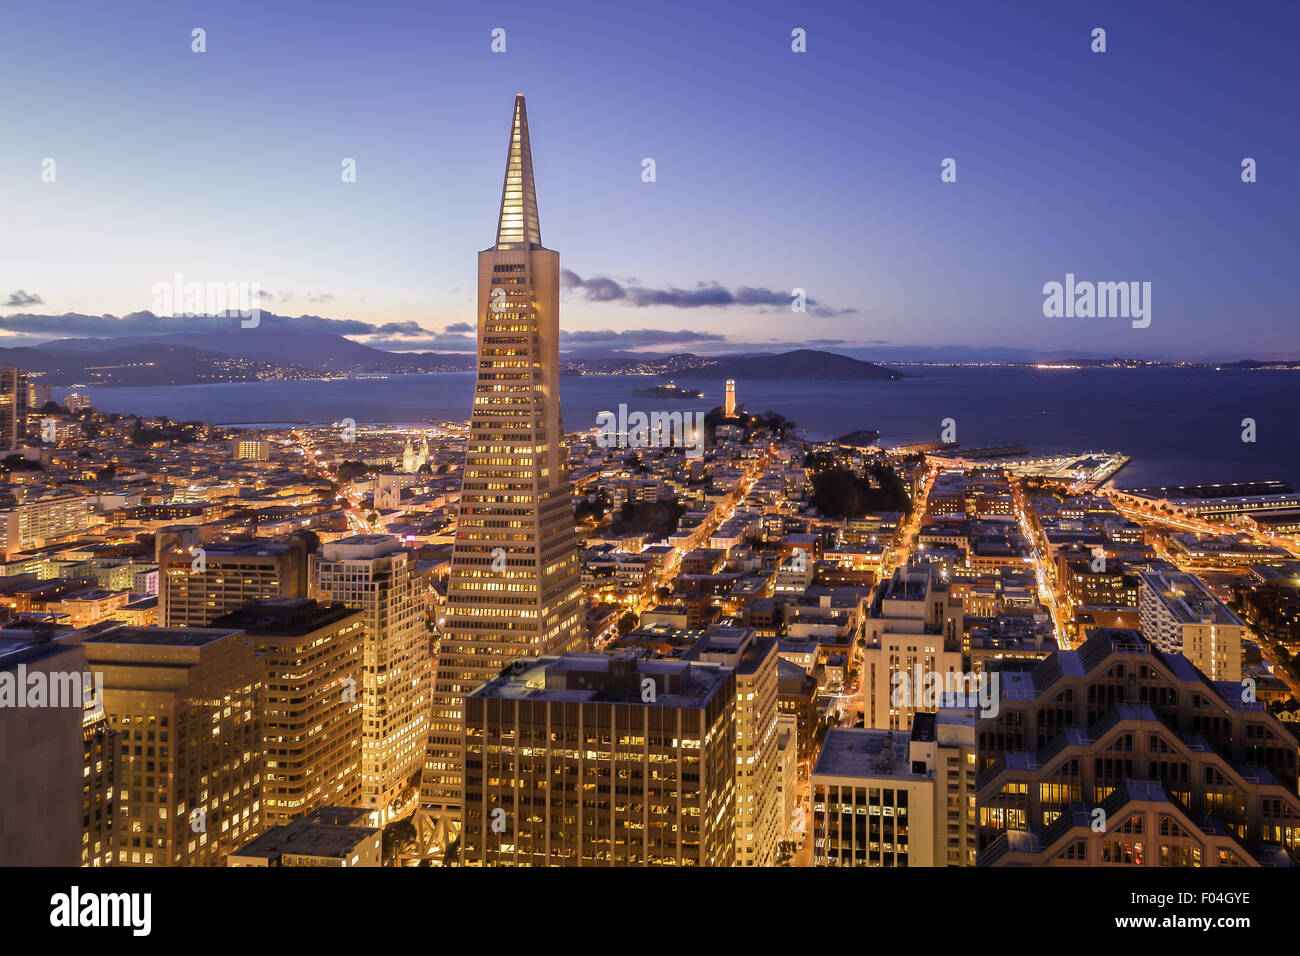 Aerial view of San Francisco cityscape at night with city lights - Stock Image